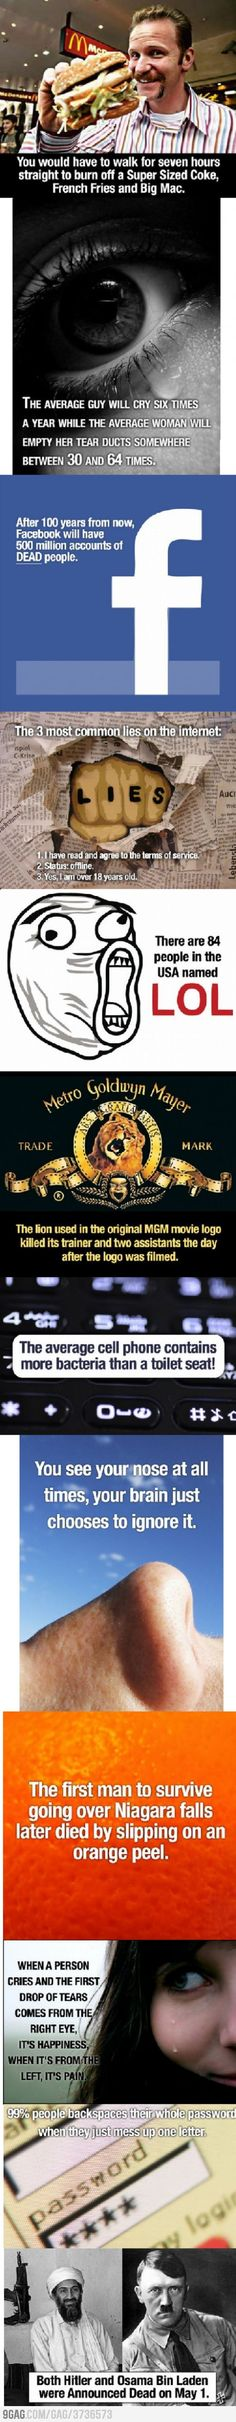 Interesting about the lion... (and they guy who died slipping on an orange peel. Can that be true...?)